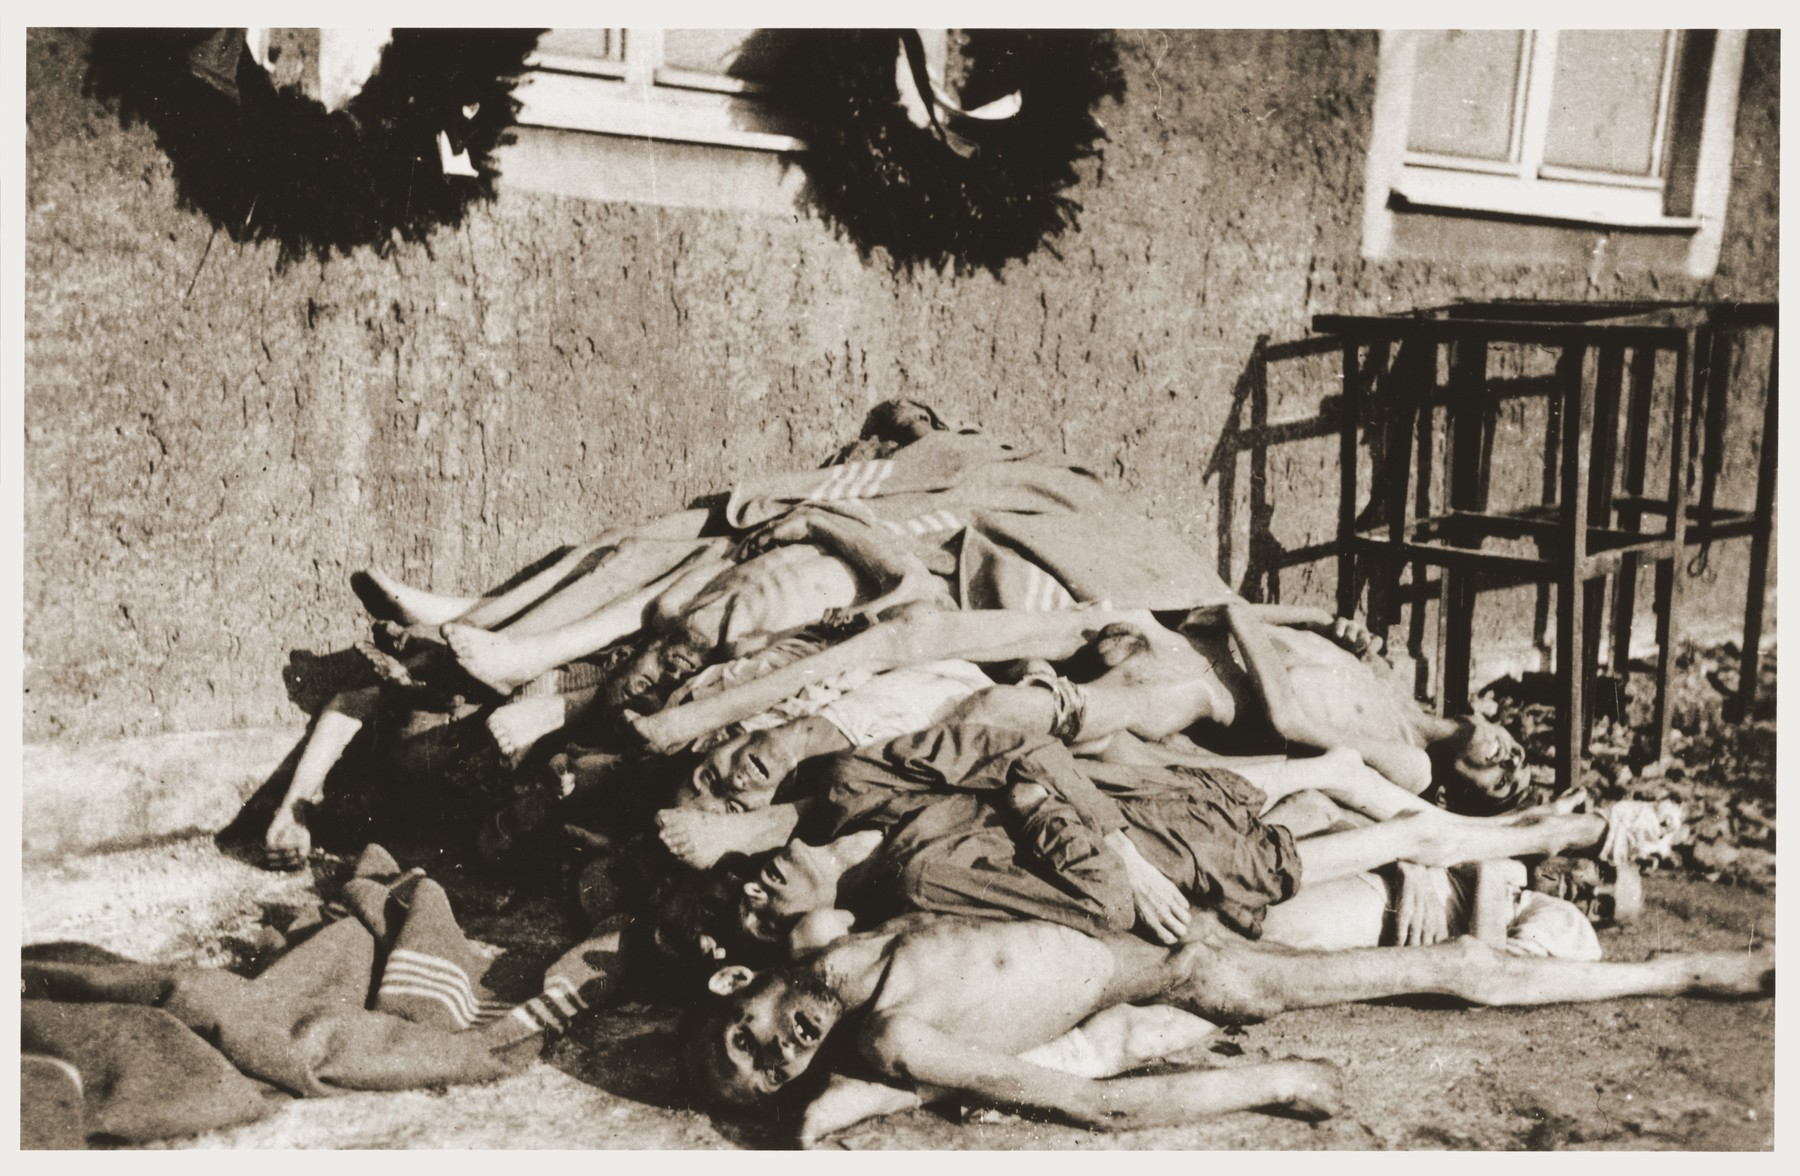 Corpses at Buchenwald concentration camp photographed very shortly after liberation.